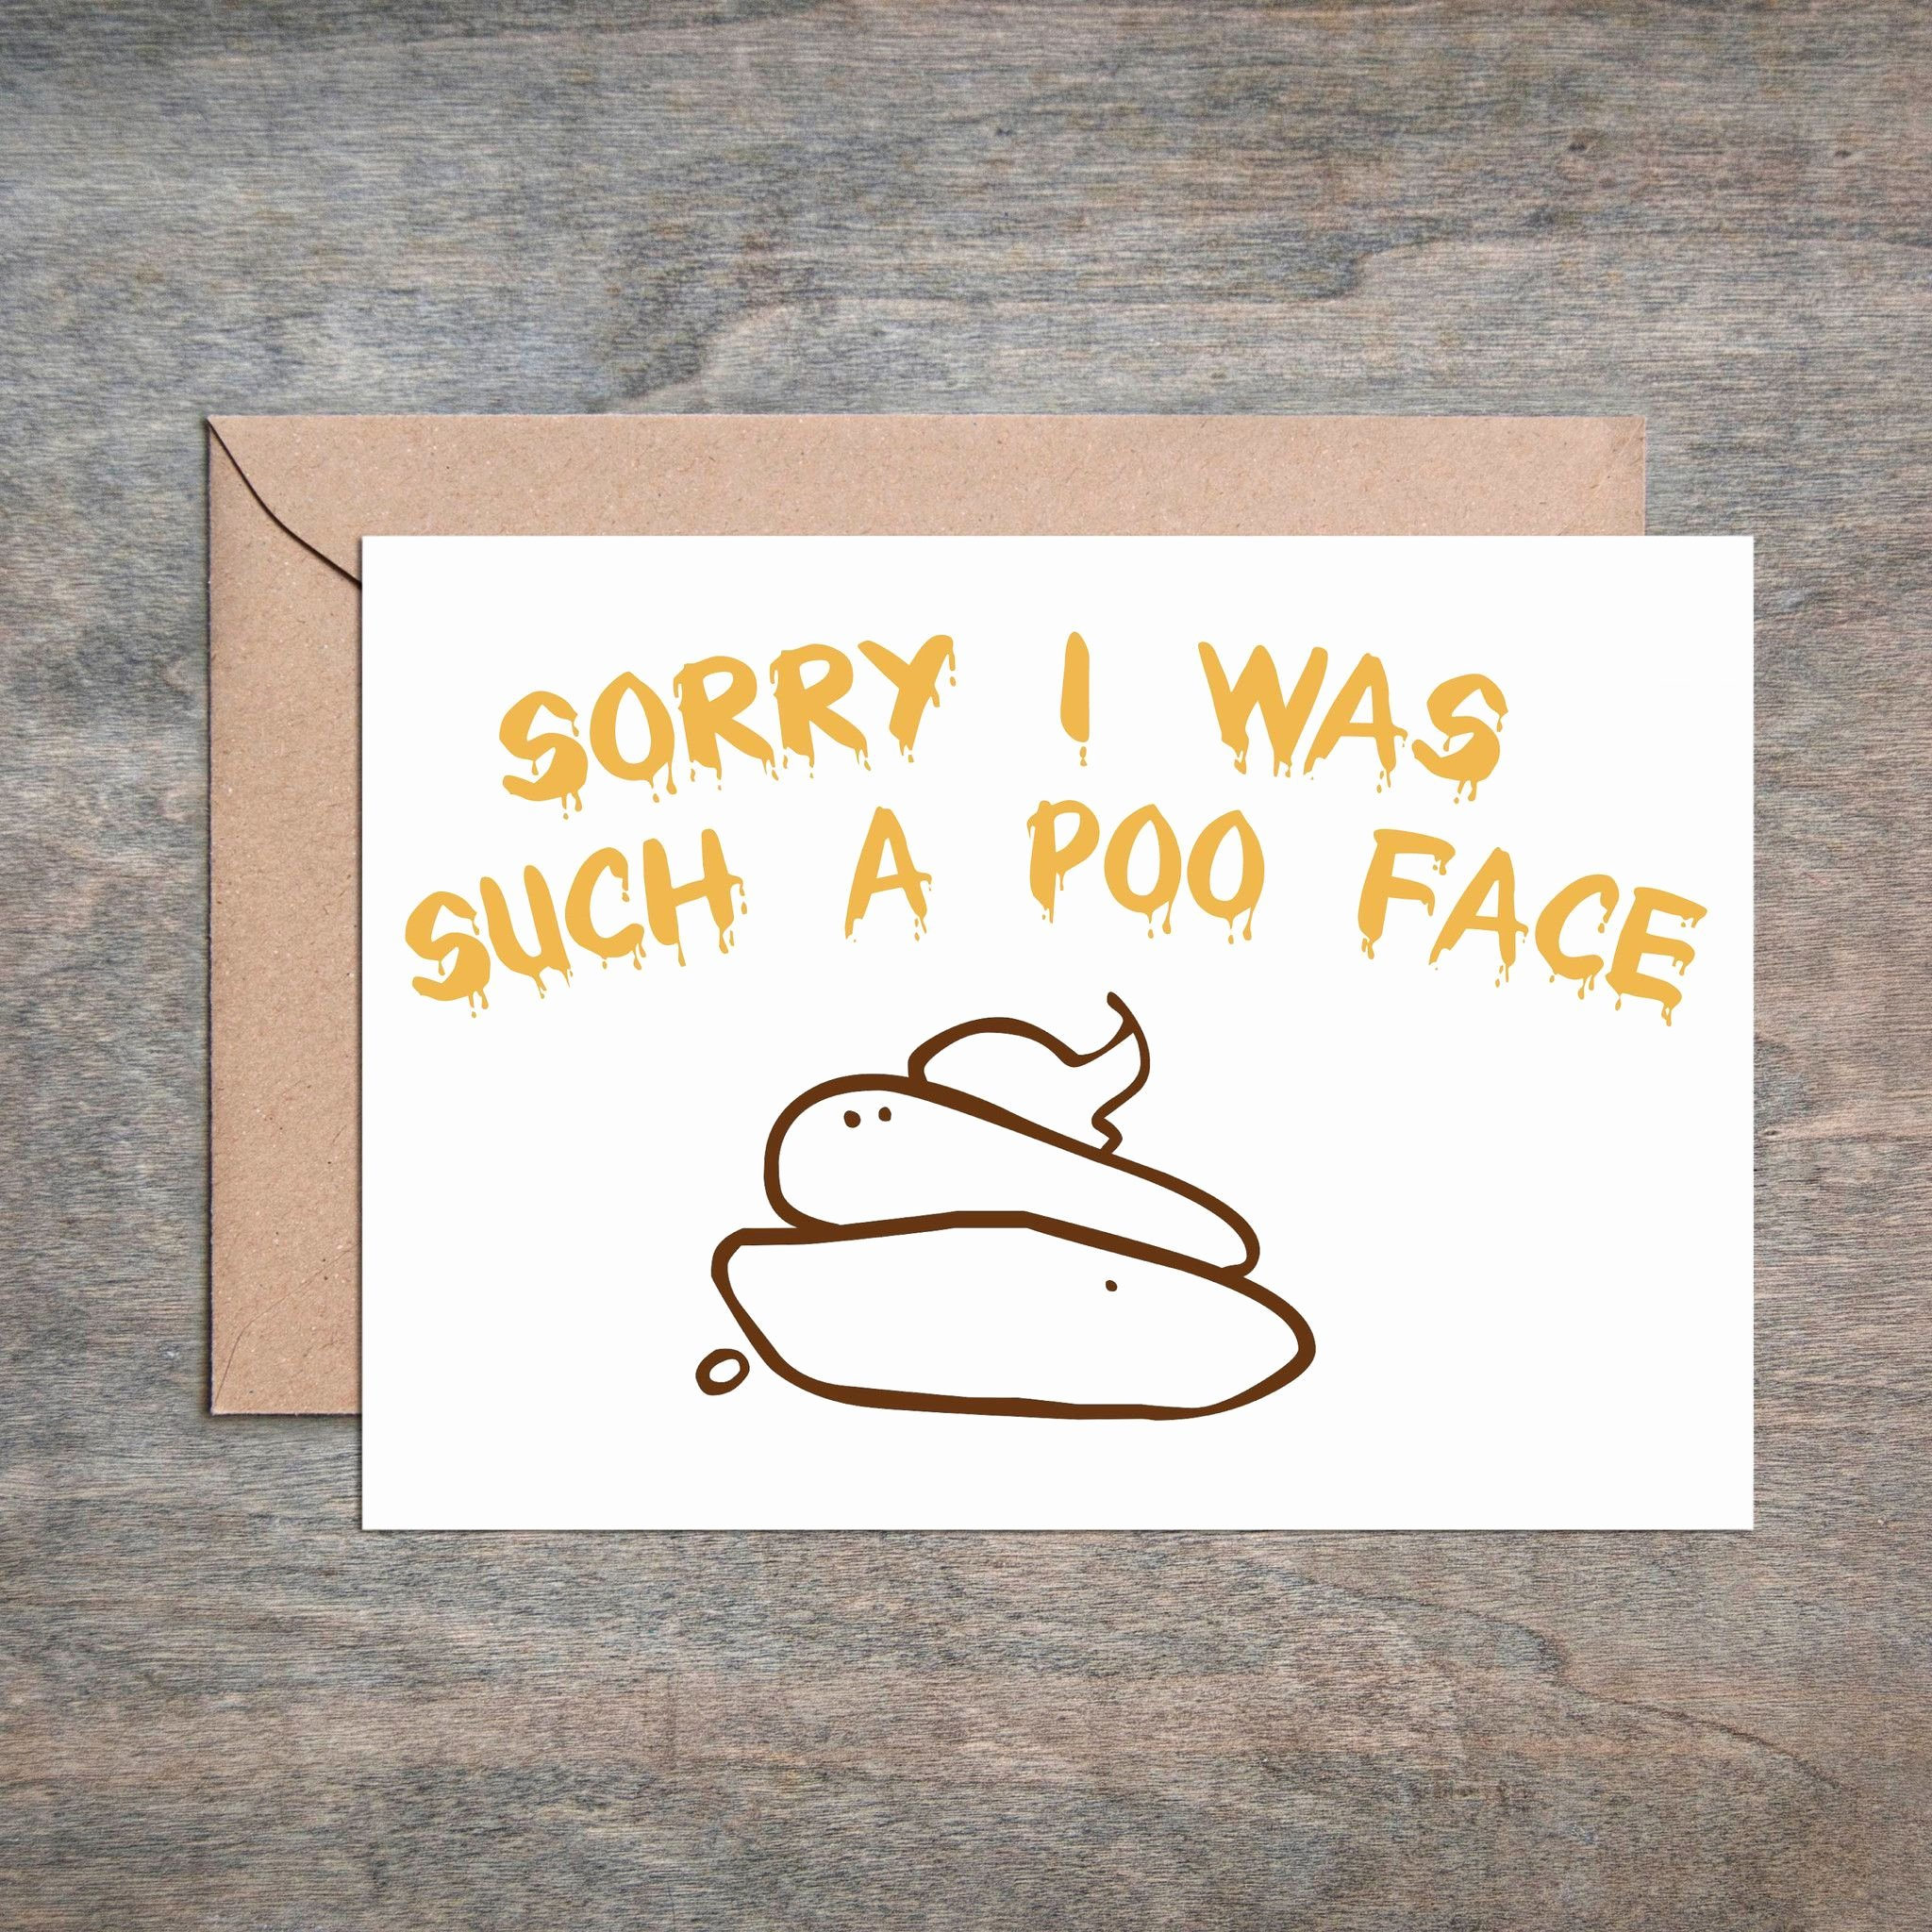 Funny Thank You Messages Elegant sorry I M Such A Poo Face Funny Sympathy Card Funny sorry